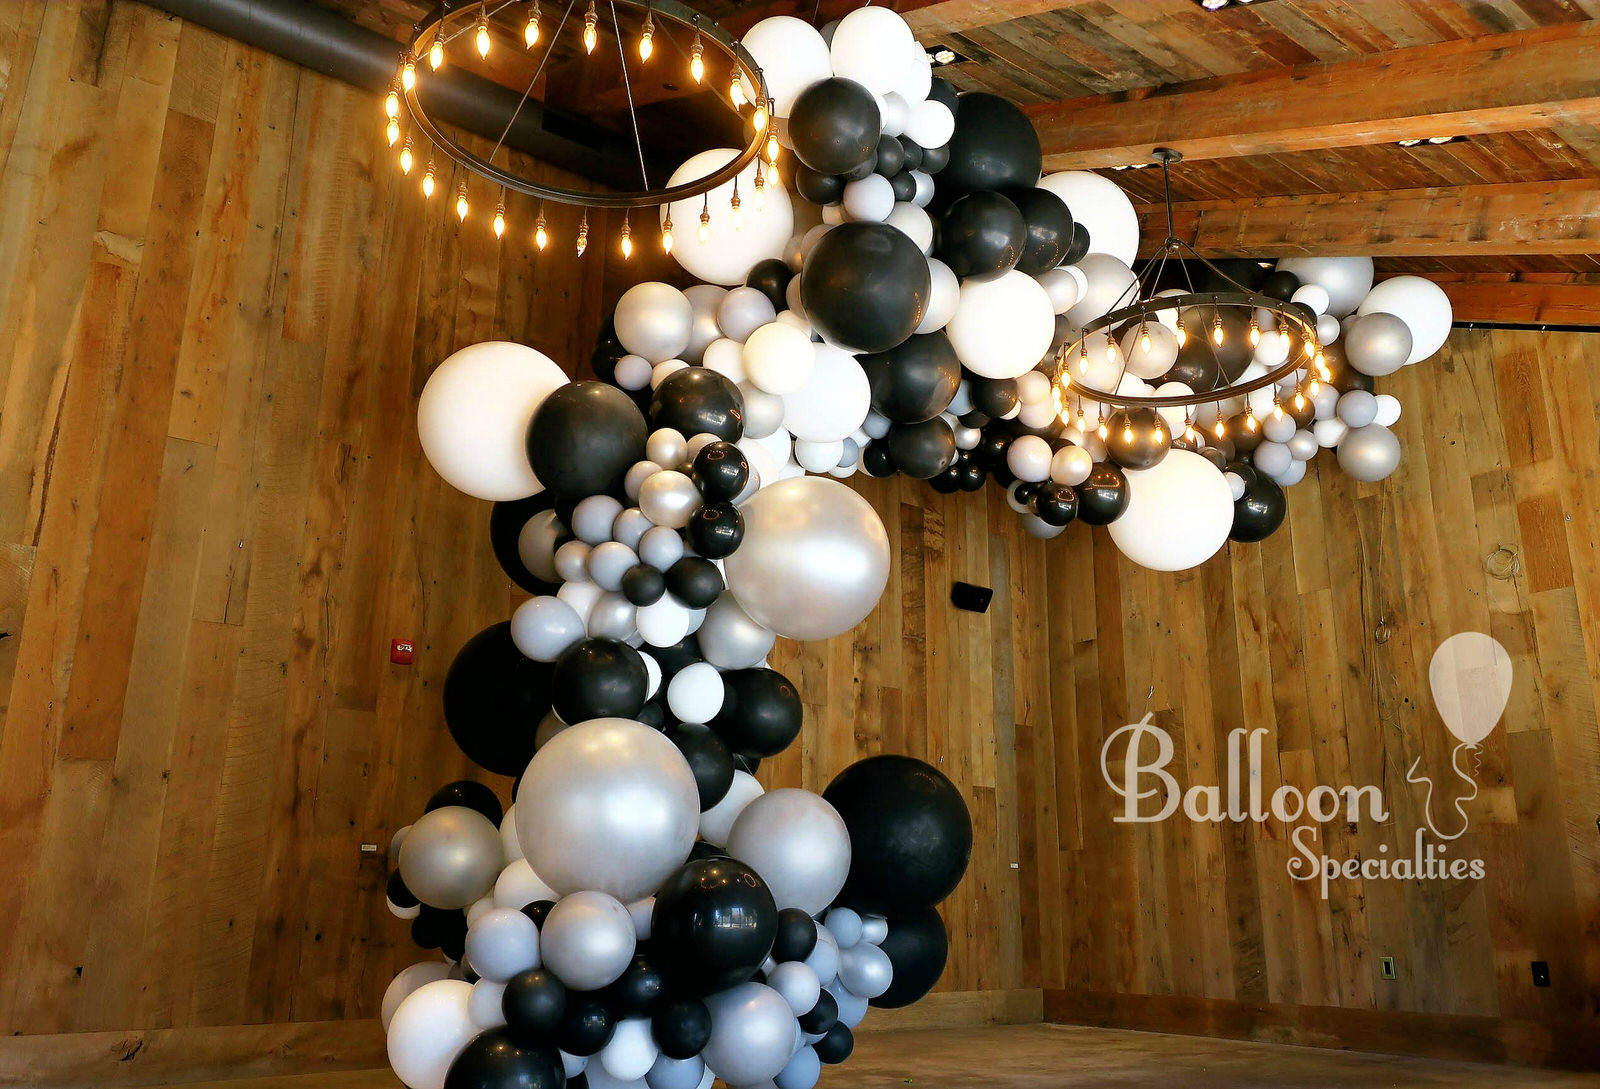 Balloon Specialties Garland drop.jpg